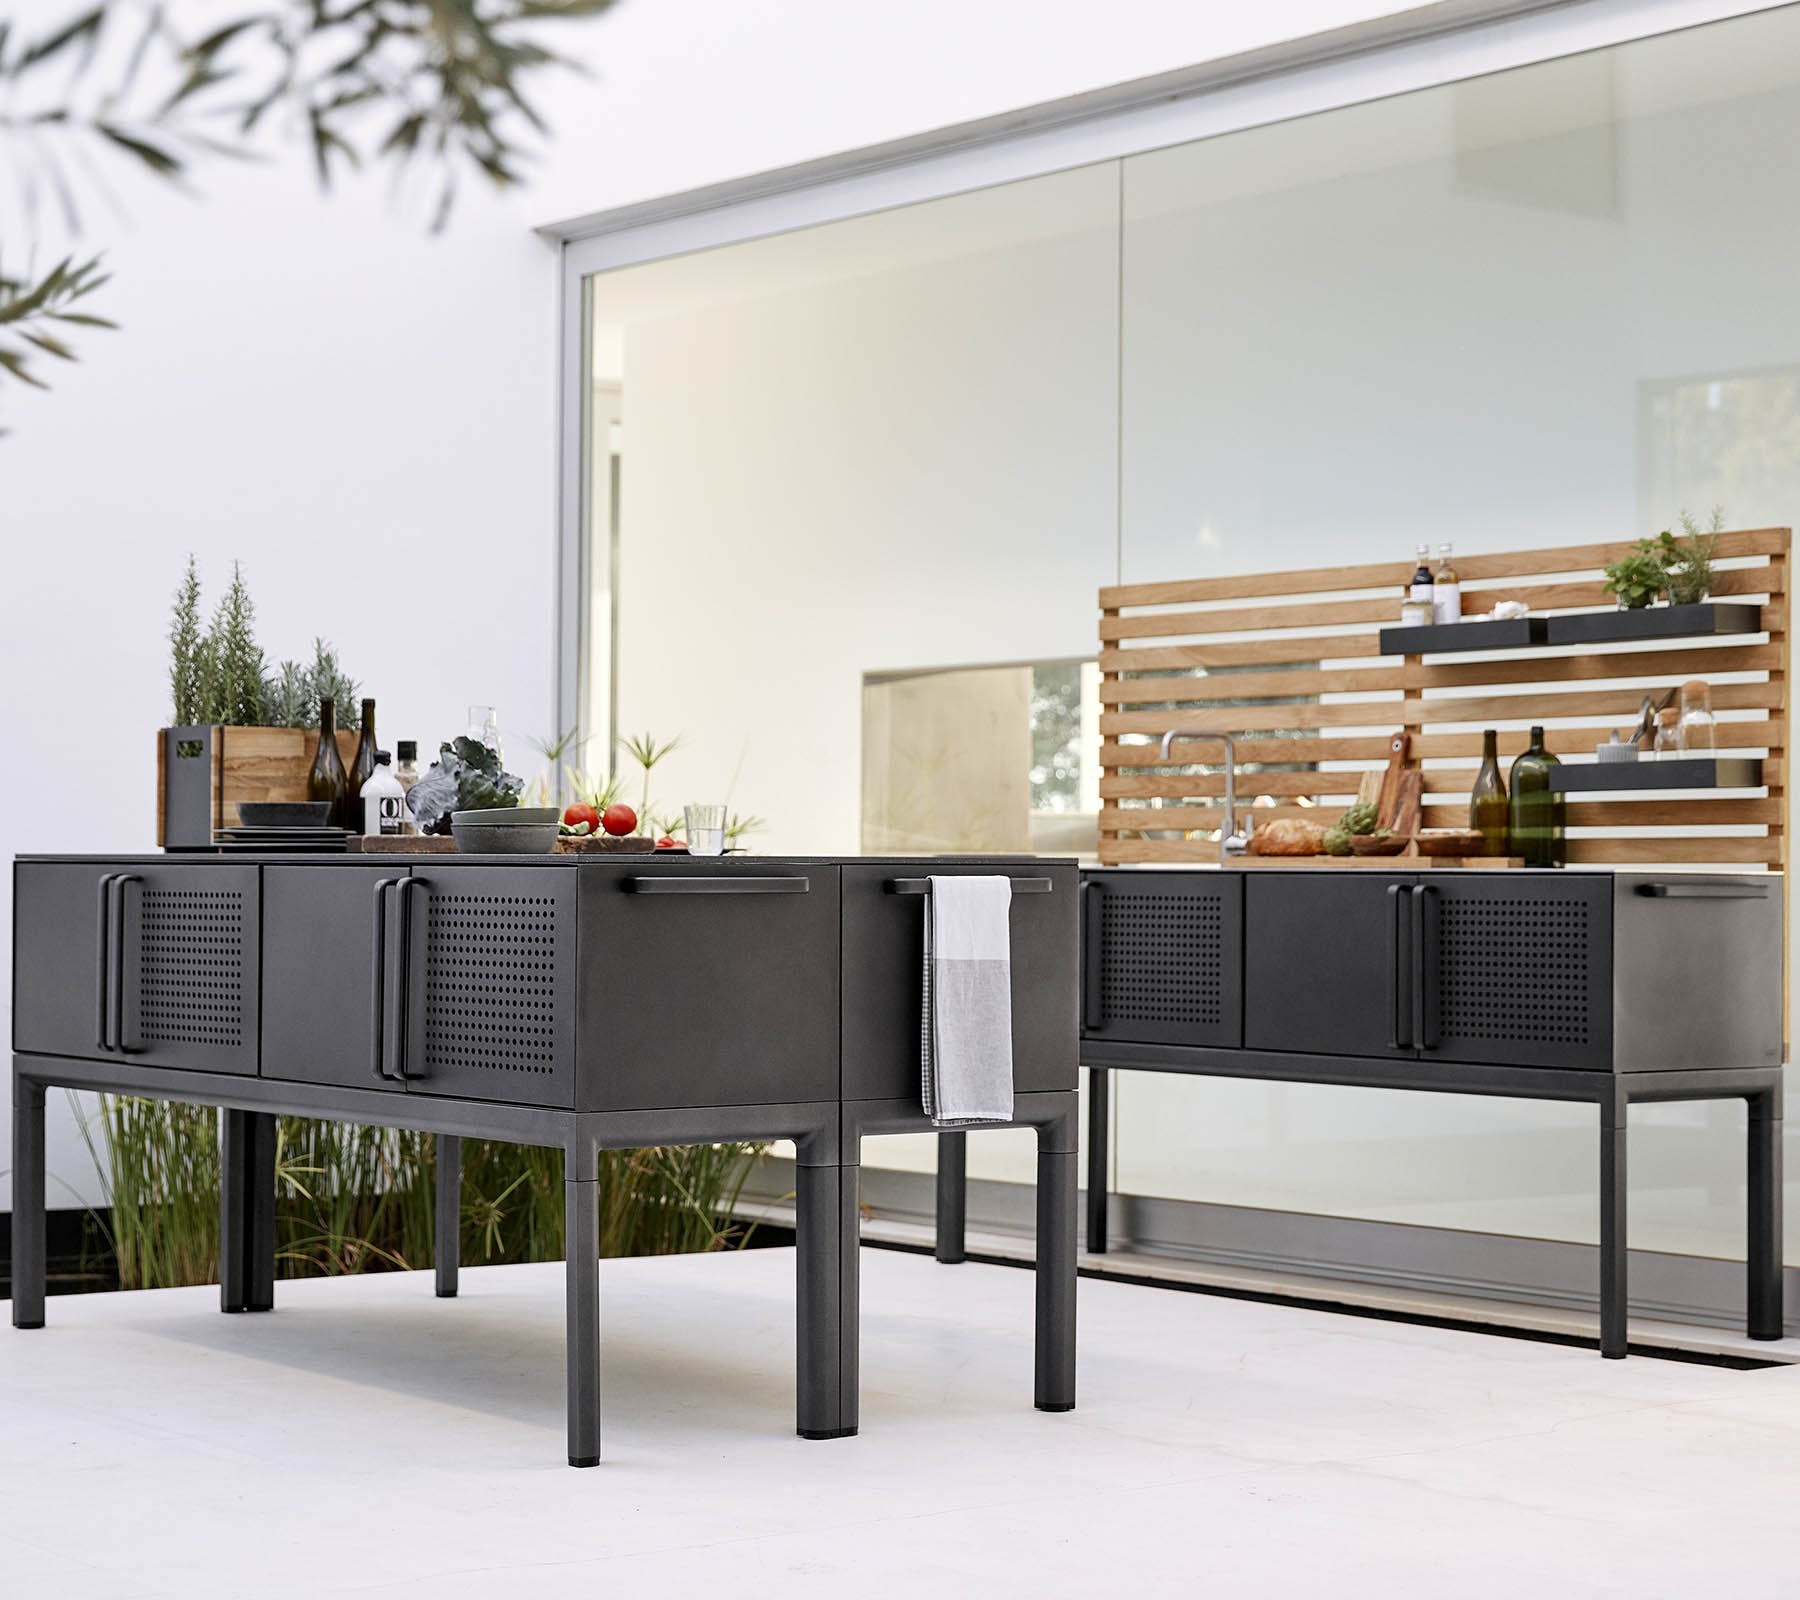 Drop Kitchen Module  from Cane-line, designed by Cane-line Design Team